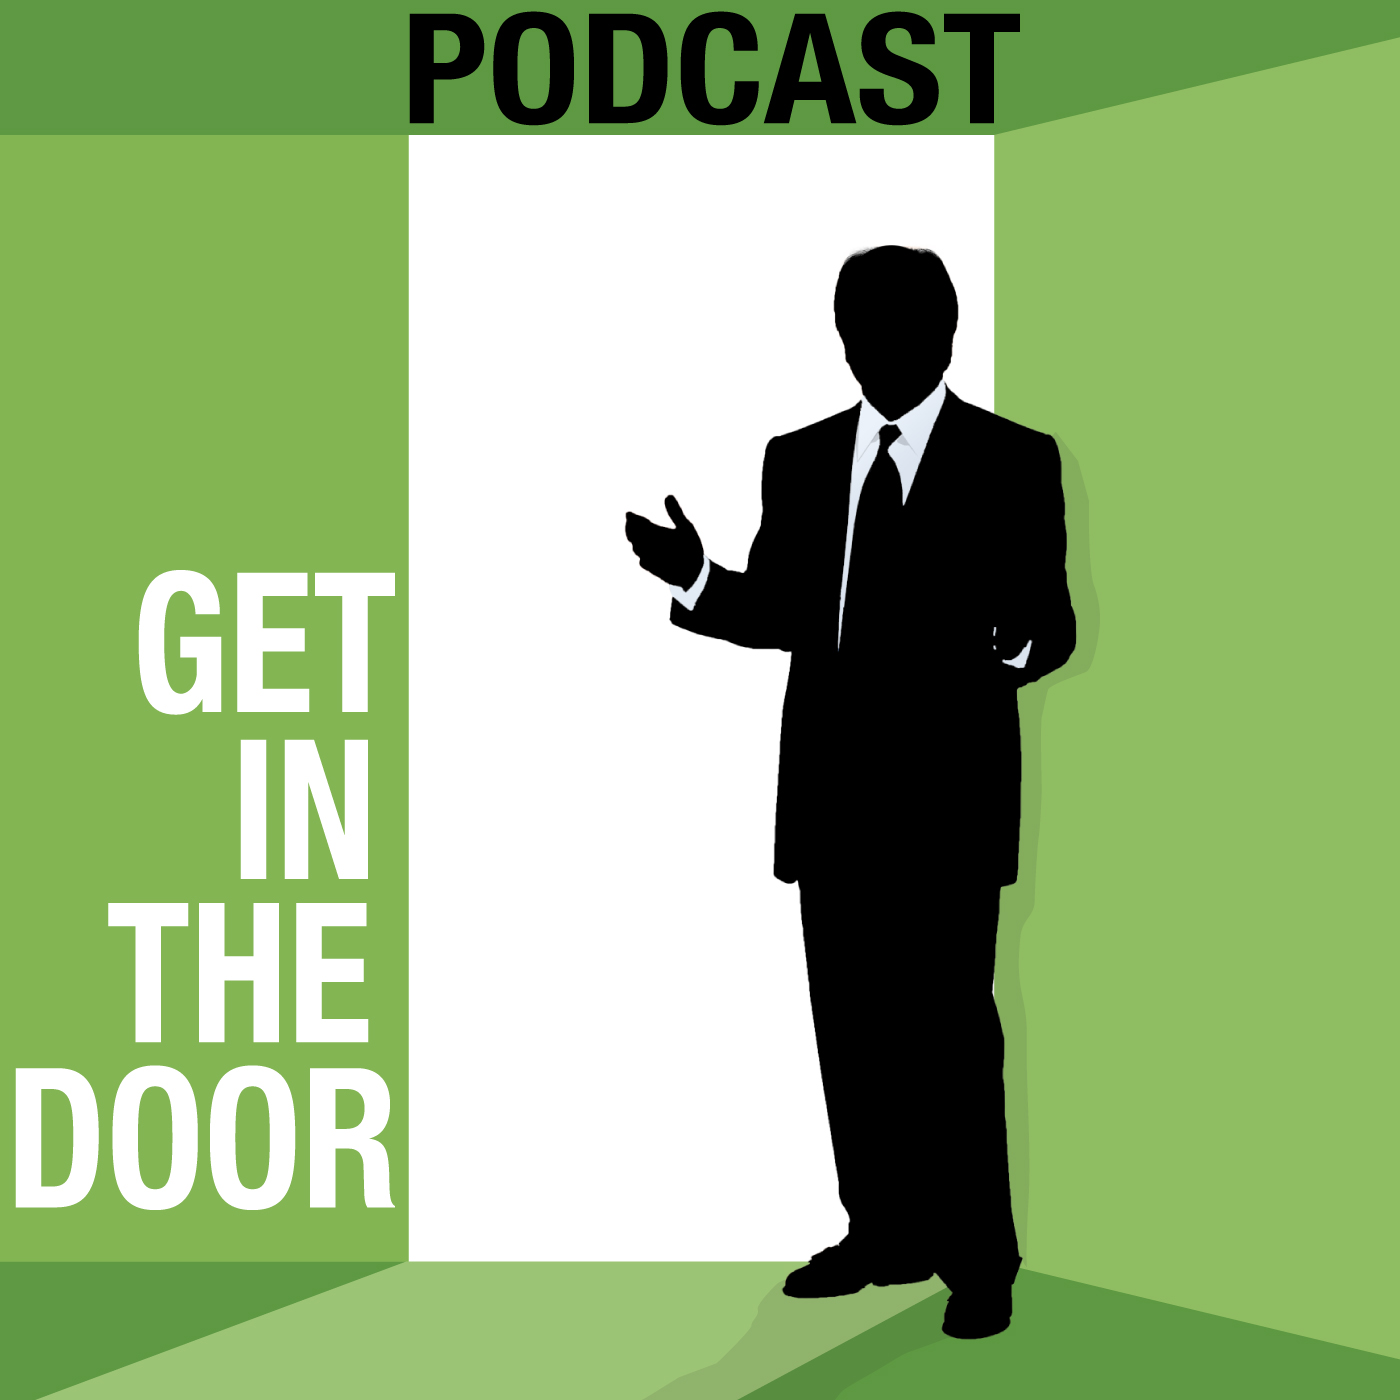 Get In The Door Podcast | Sales Prospecting Strategies & Tactics brought to you by Steve Kloyda, The Prospecting Expert